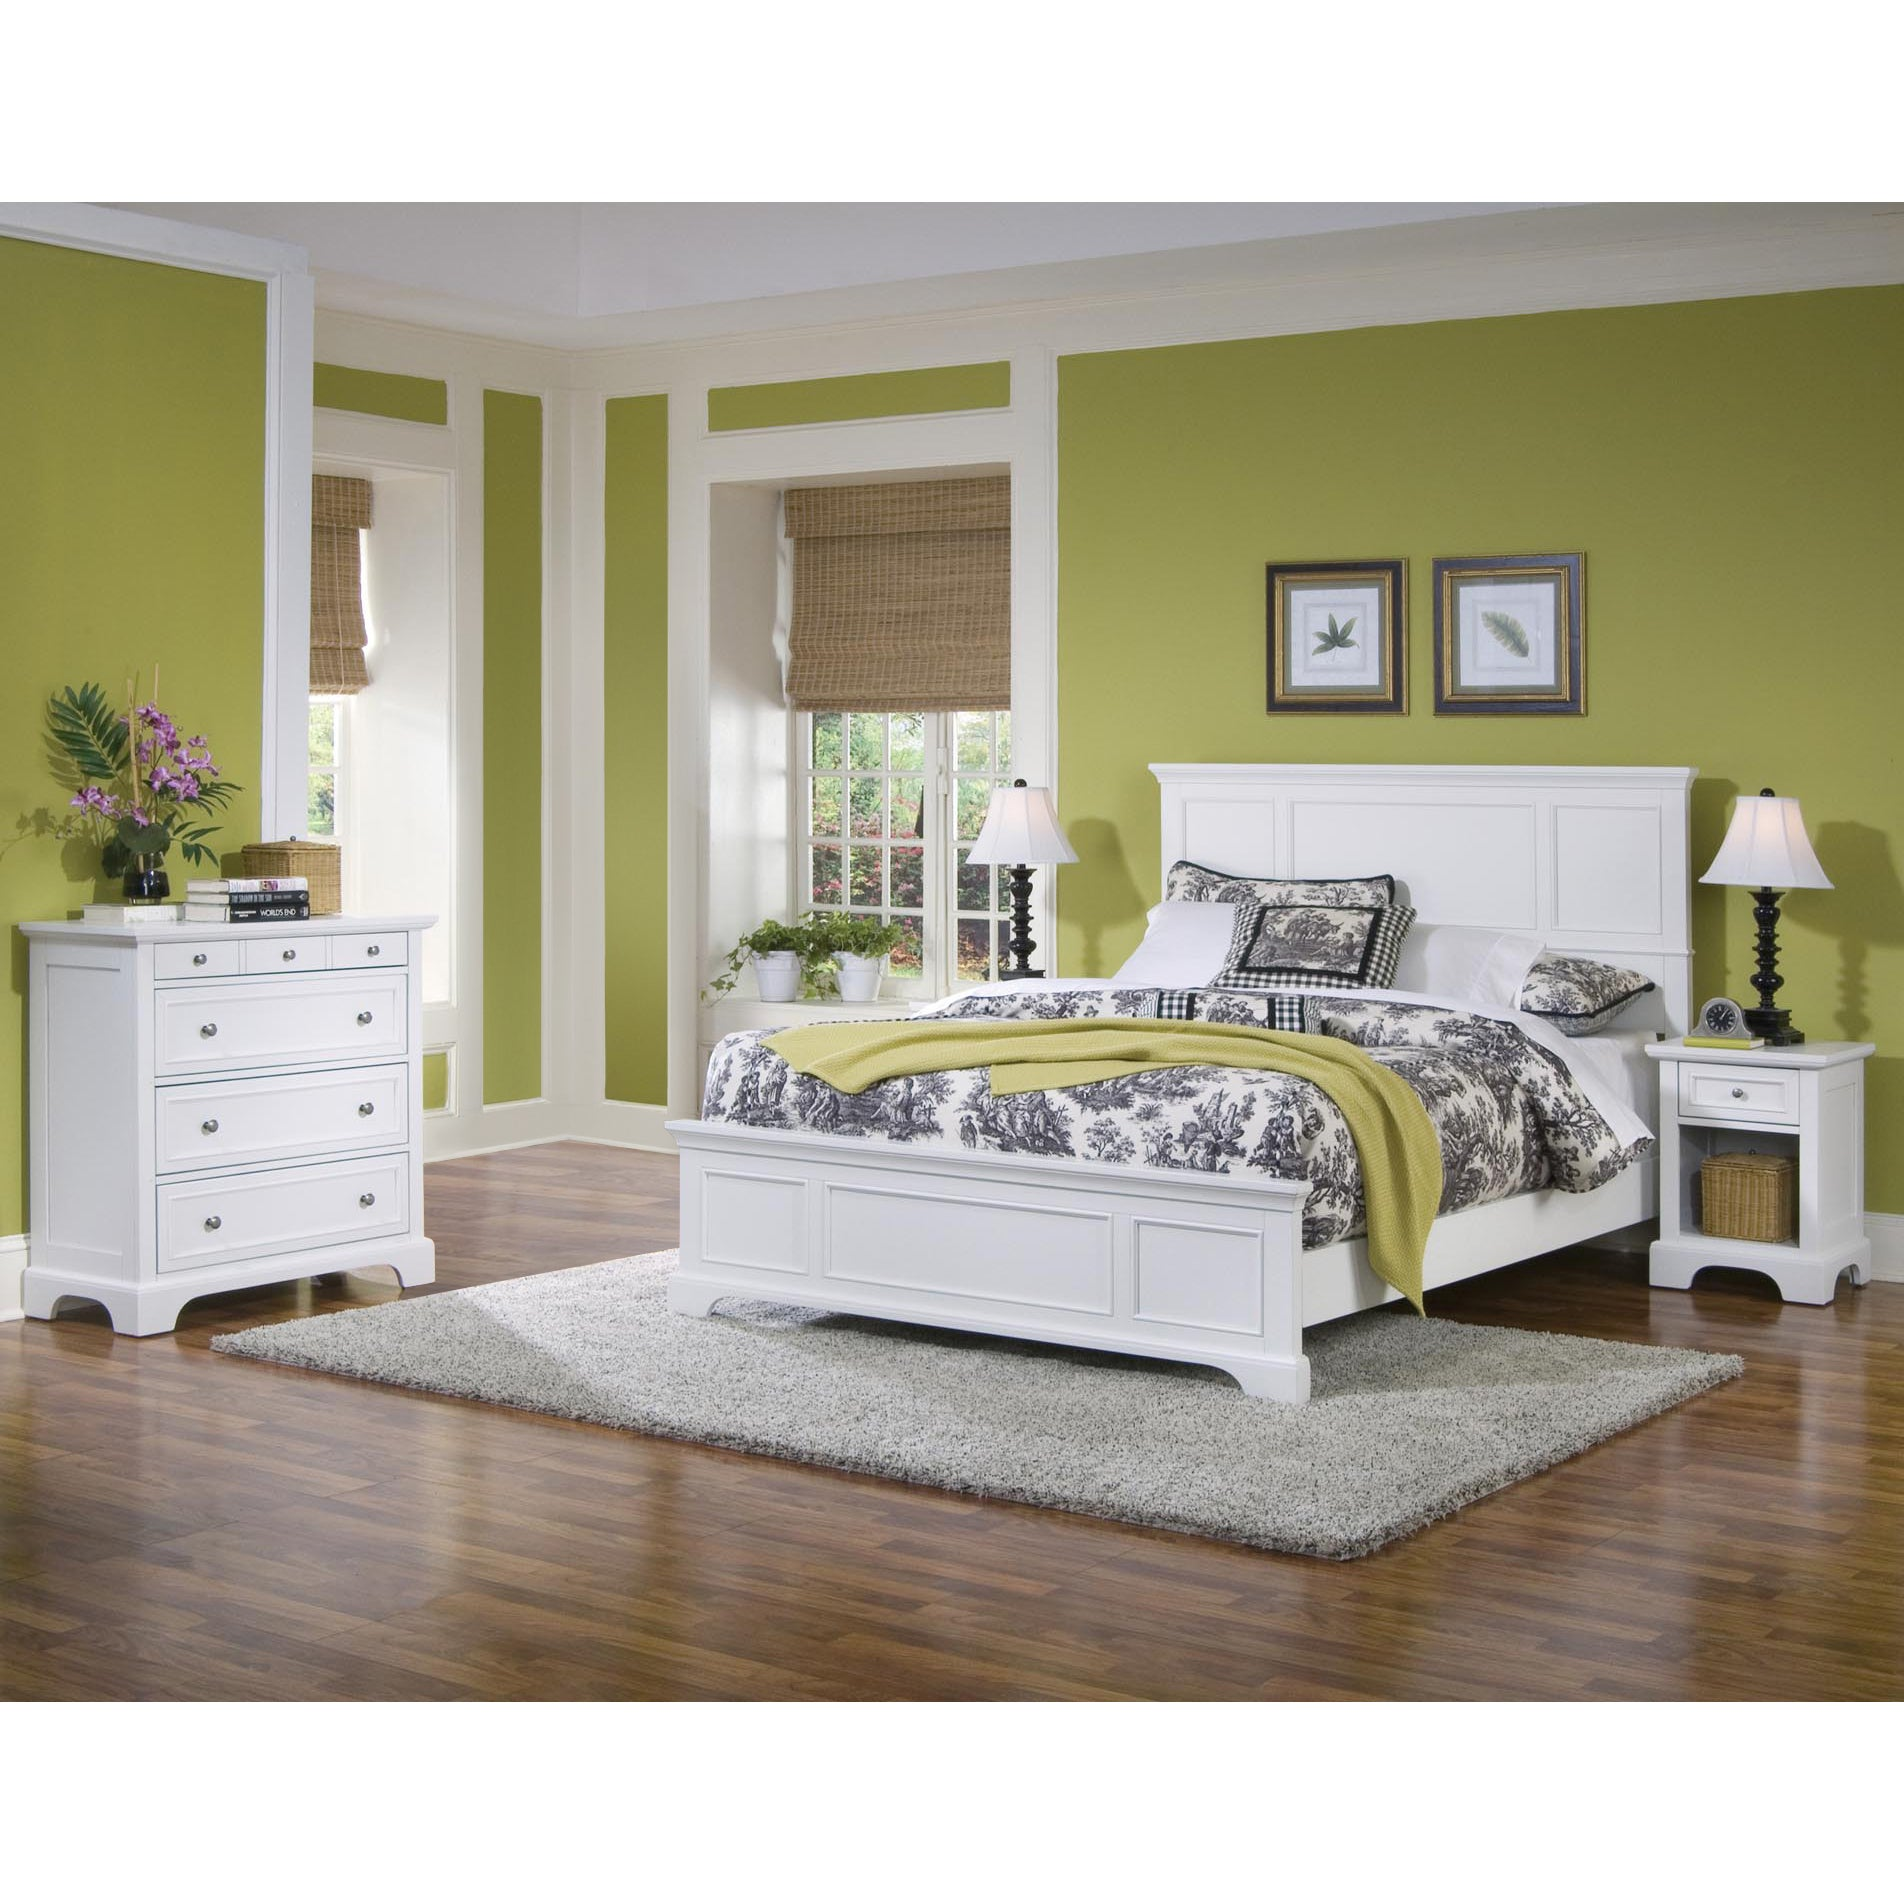 Merveilleux Naples Queen Bed, Nightstand, And Chest Bedroom Set By Home Styles